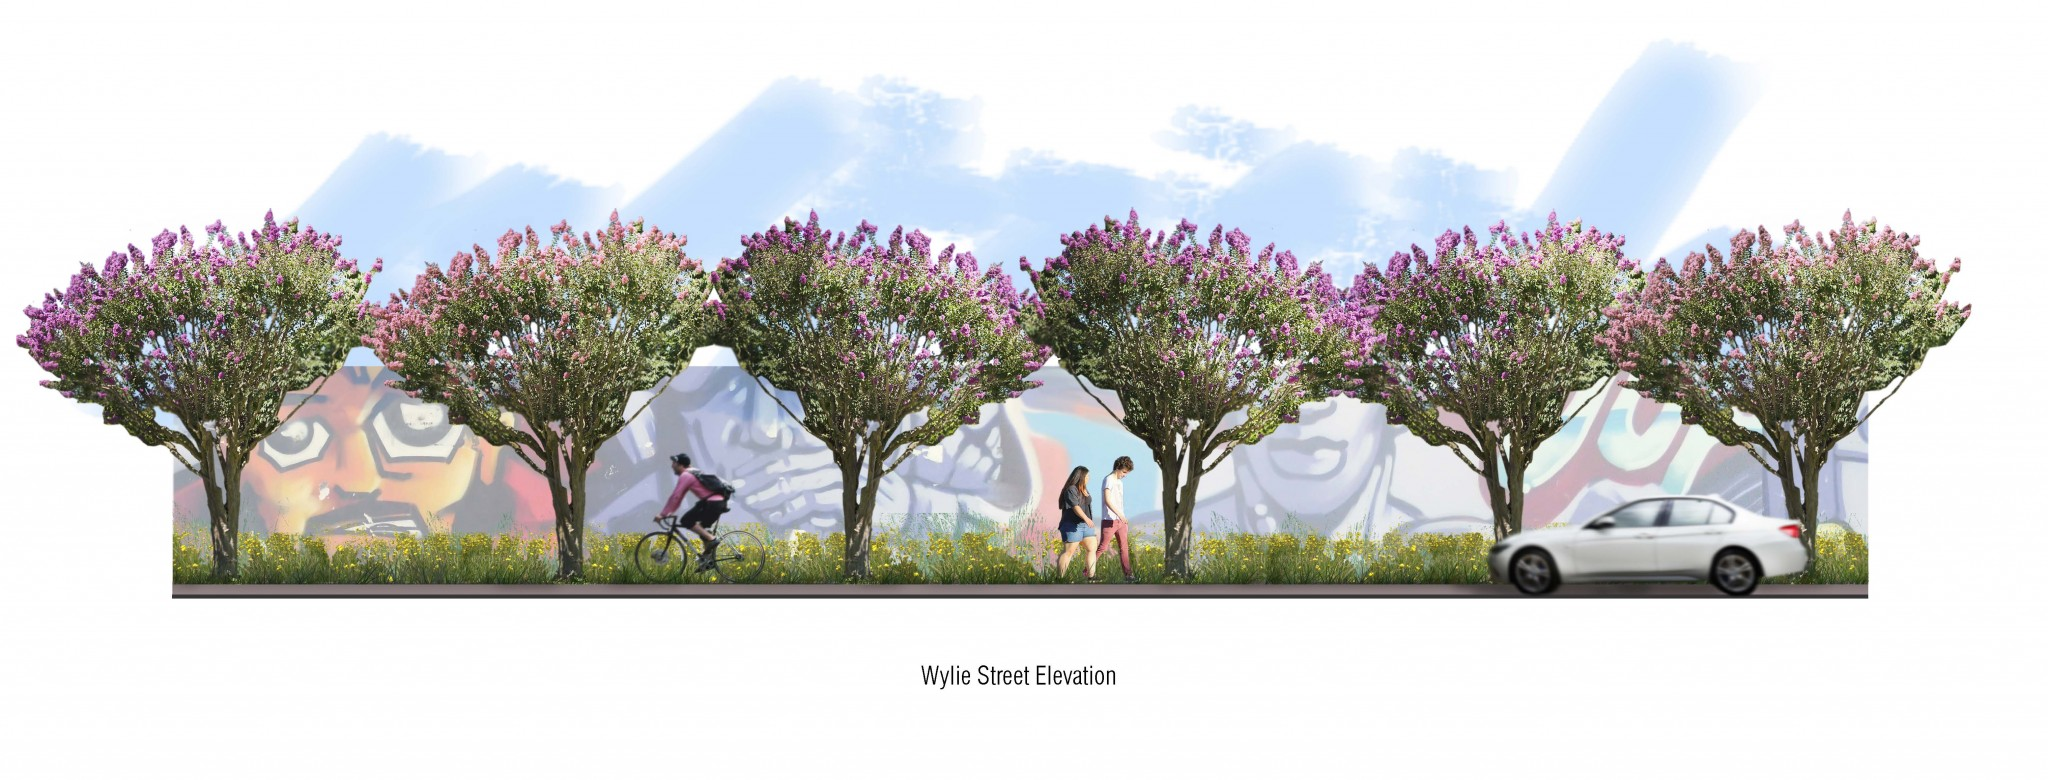 Wylie-St-Elevation_Page_1